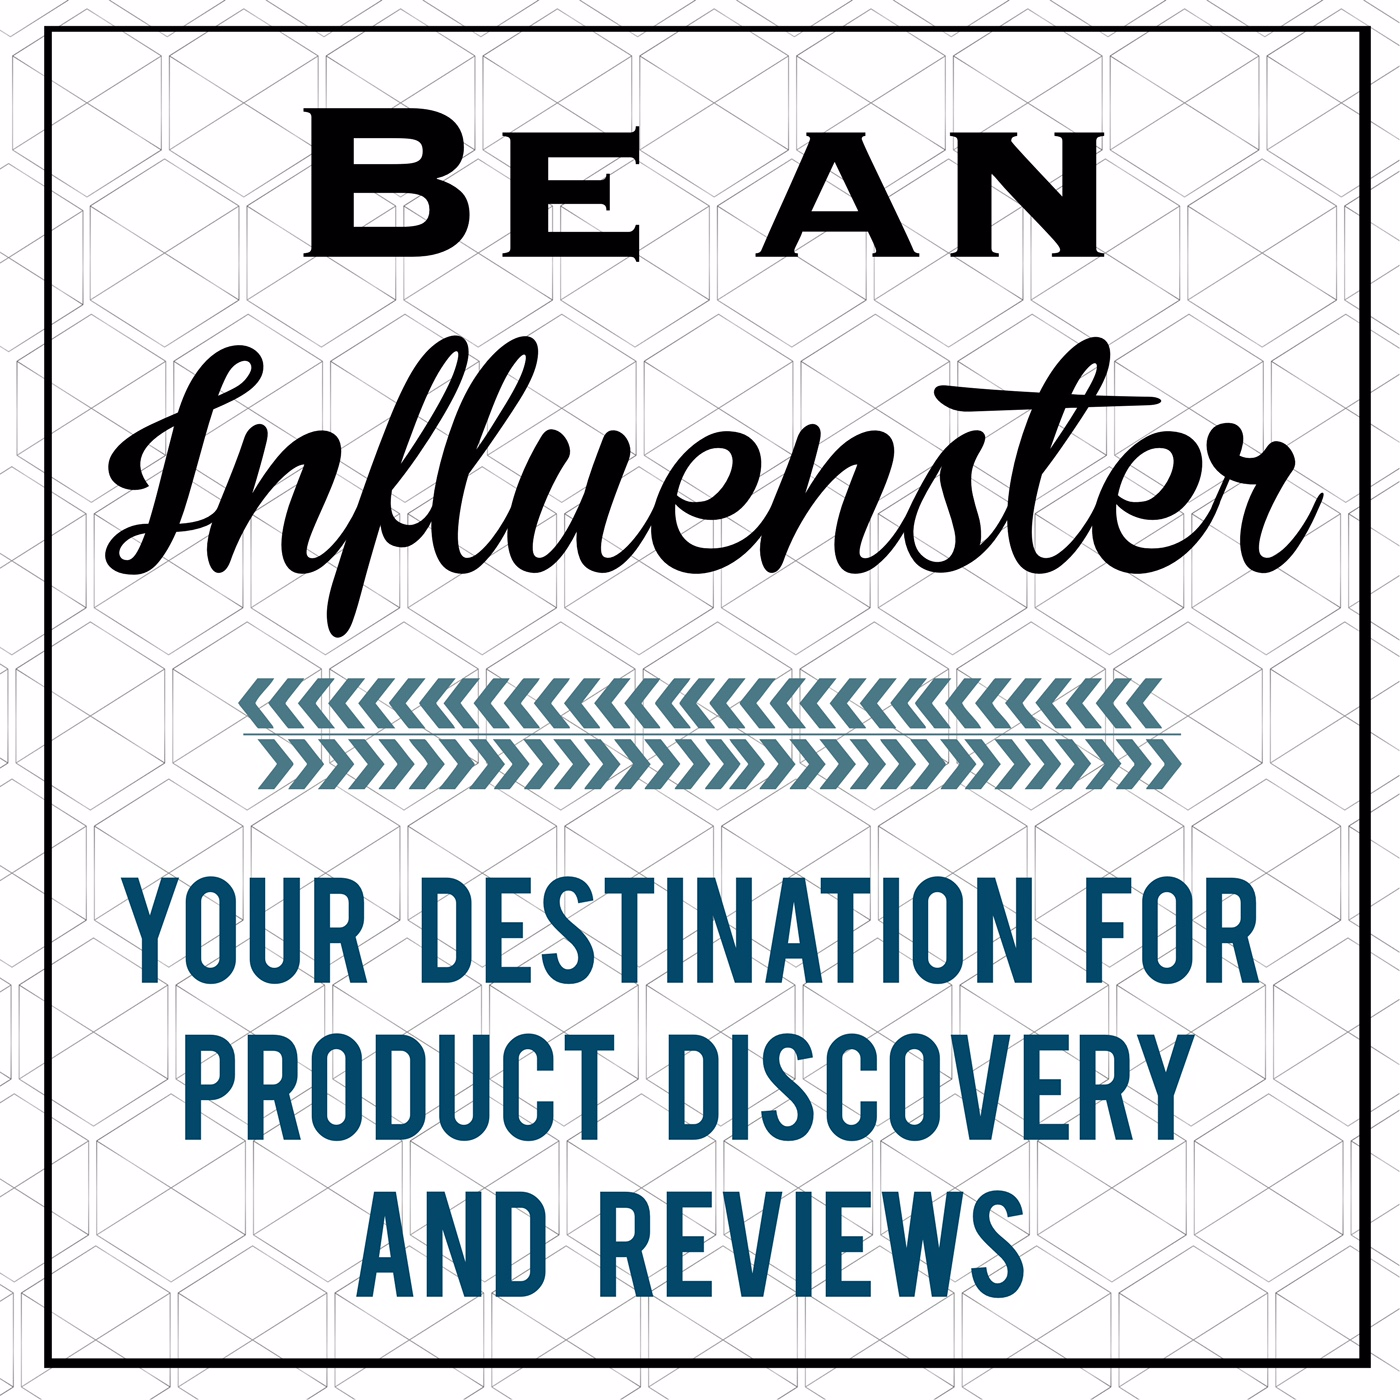 Become an Influenster!